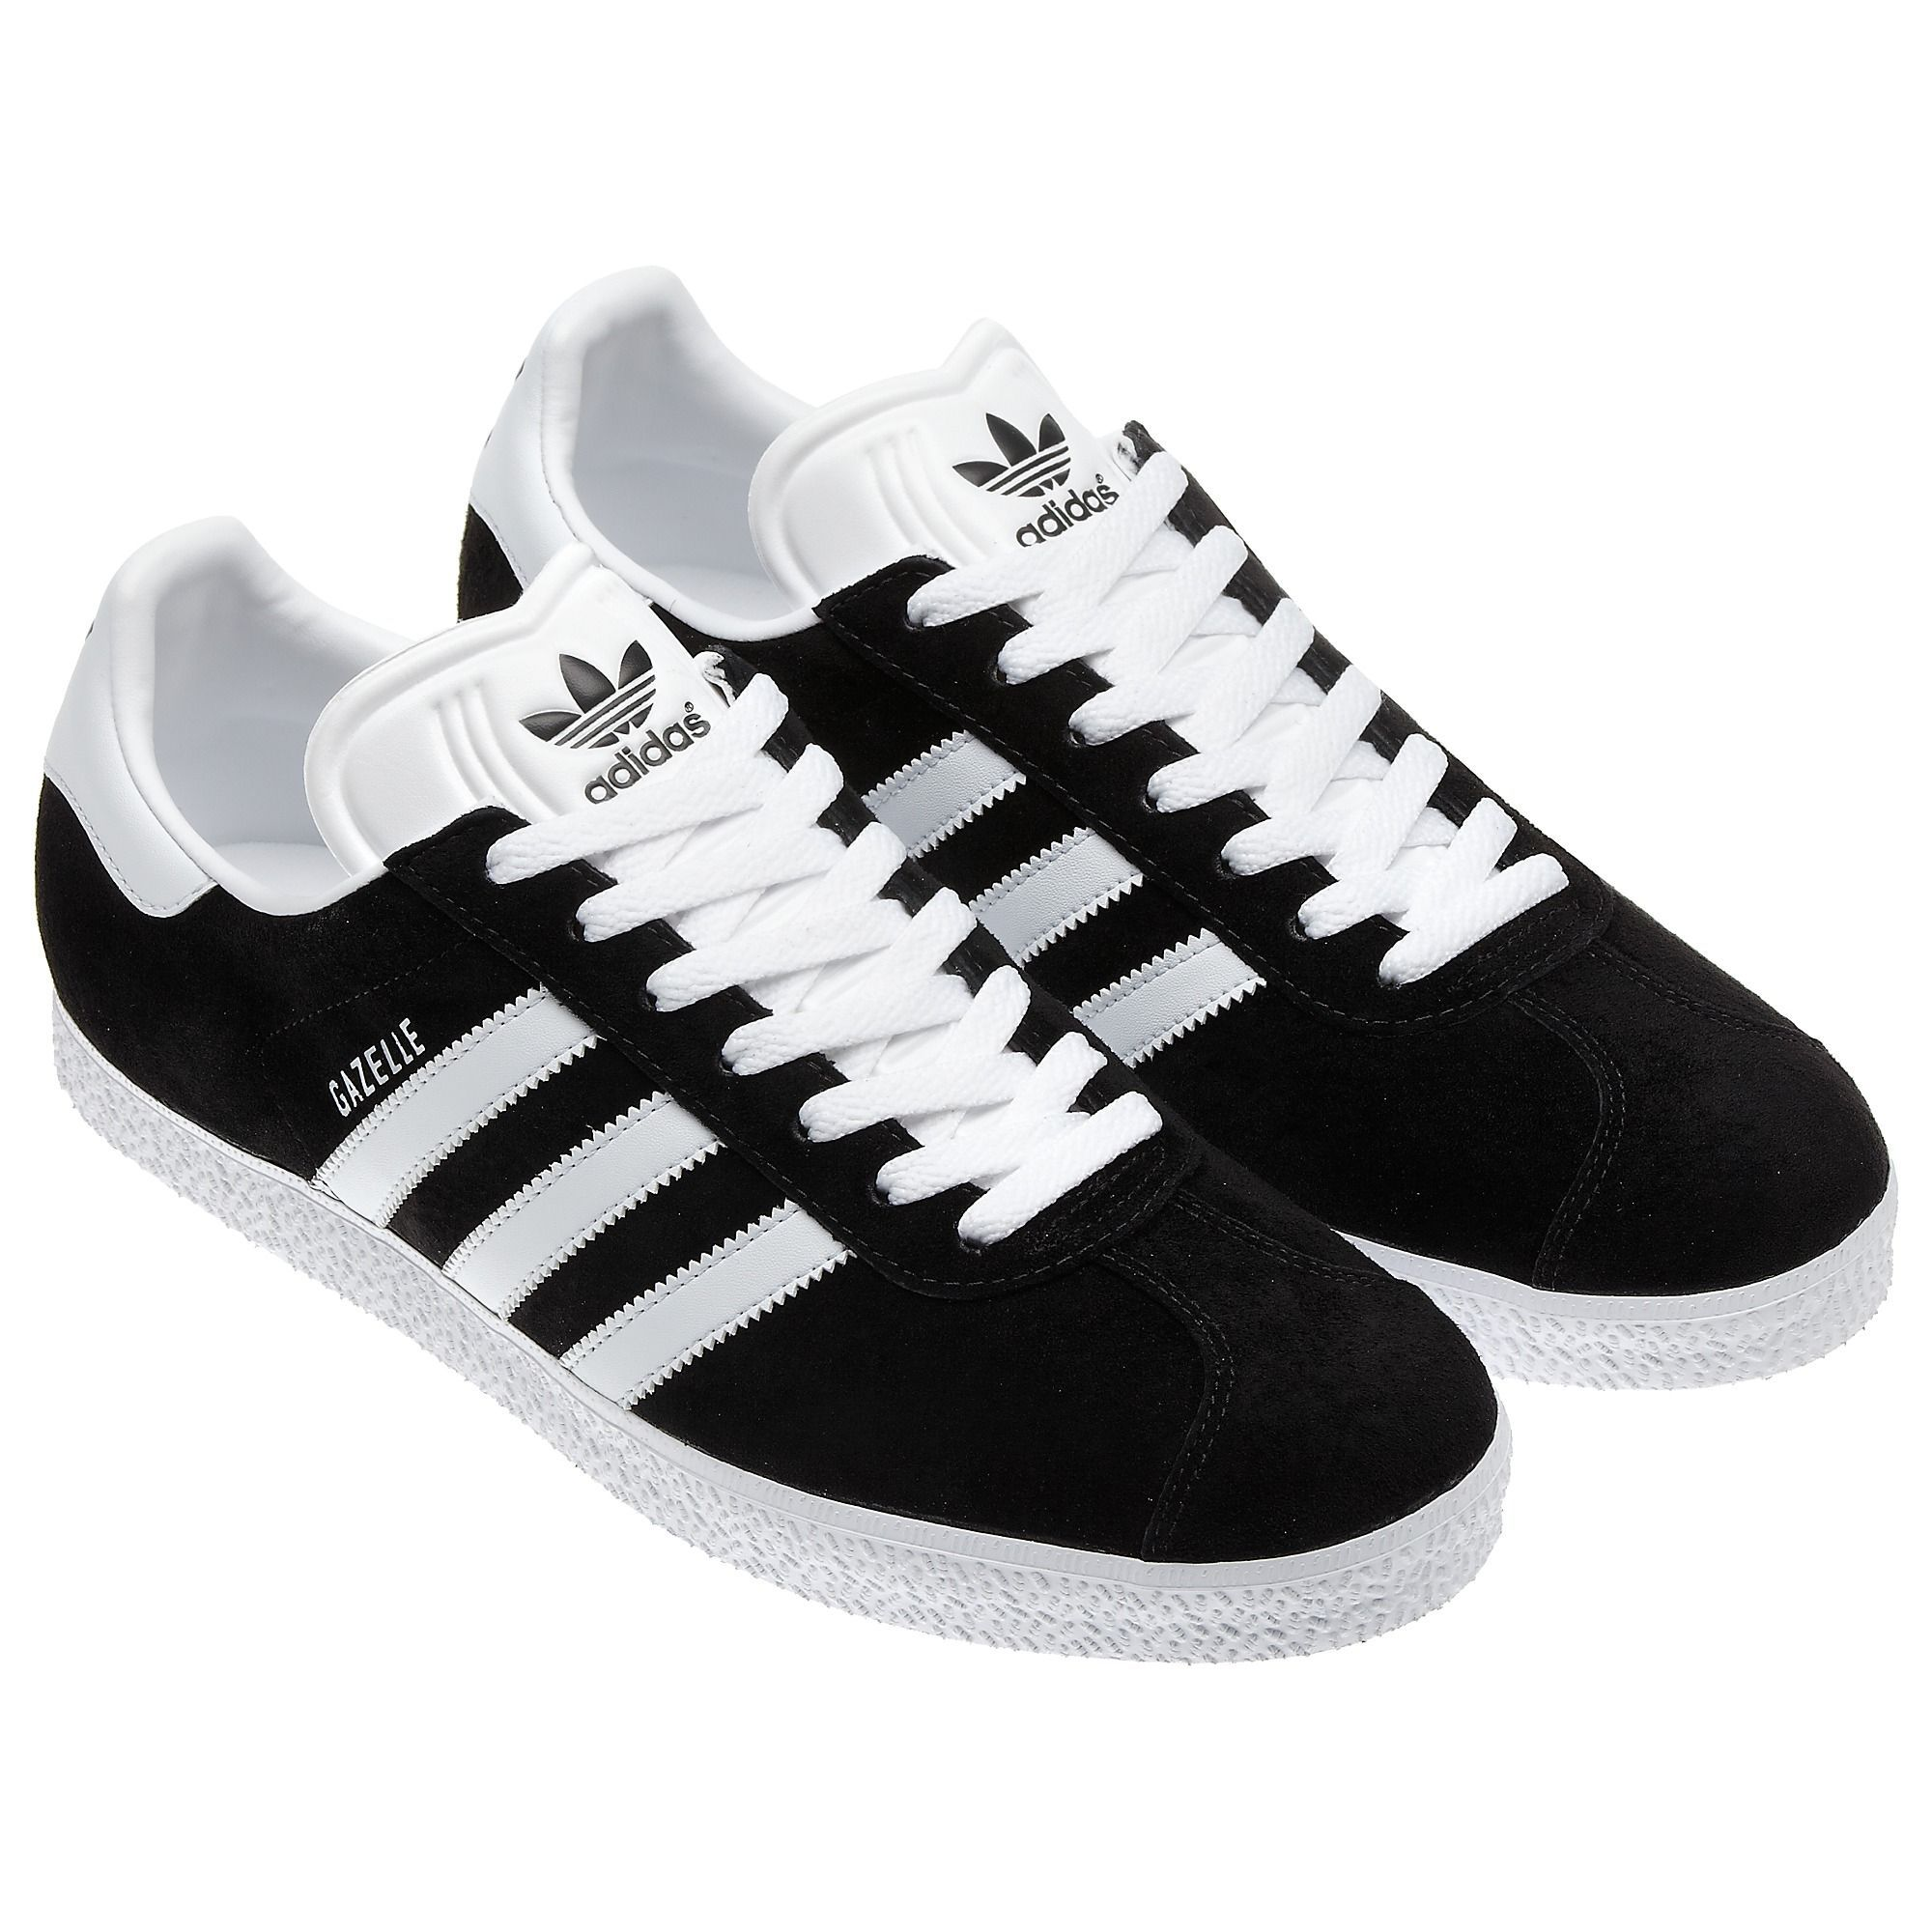 a4ccbcb7d32 adidas - Gazelle Shoes Black   Running White 032622 ADIDAS Men s Shoes  Running - http